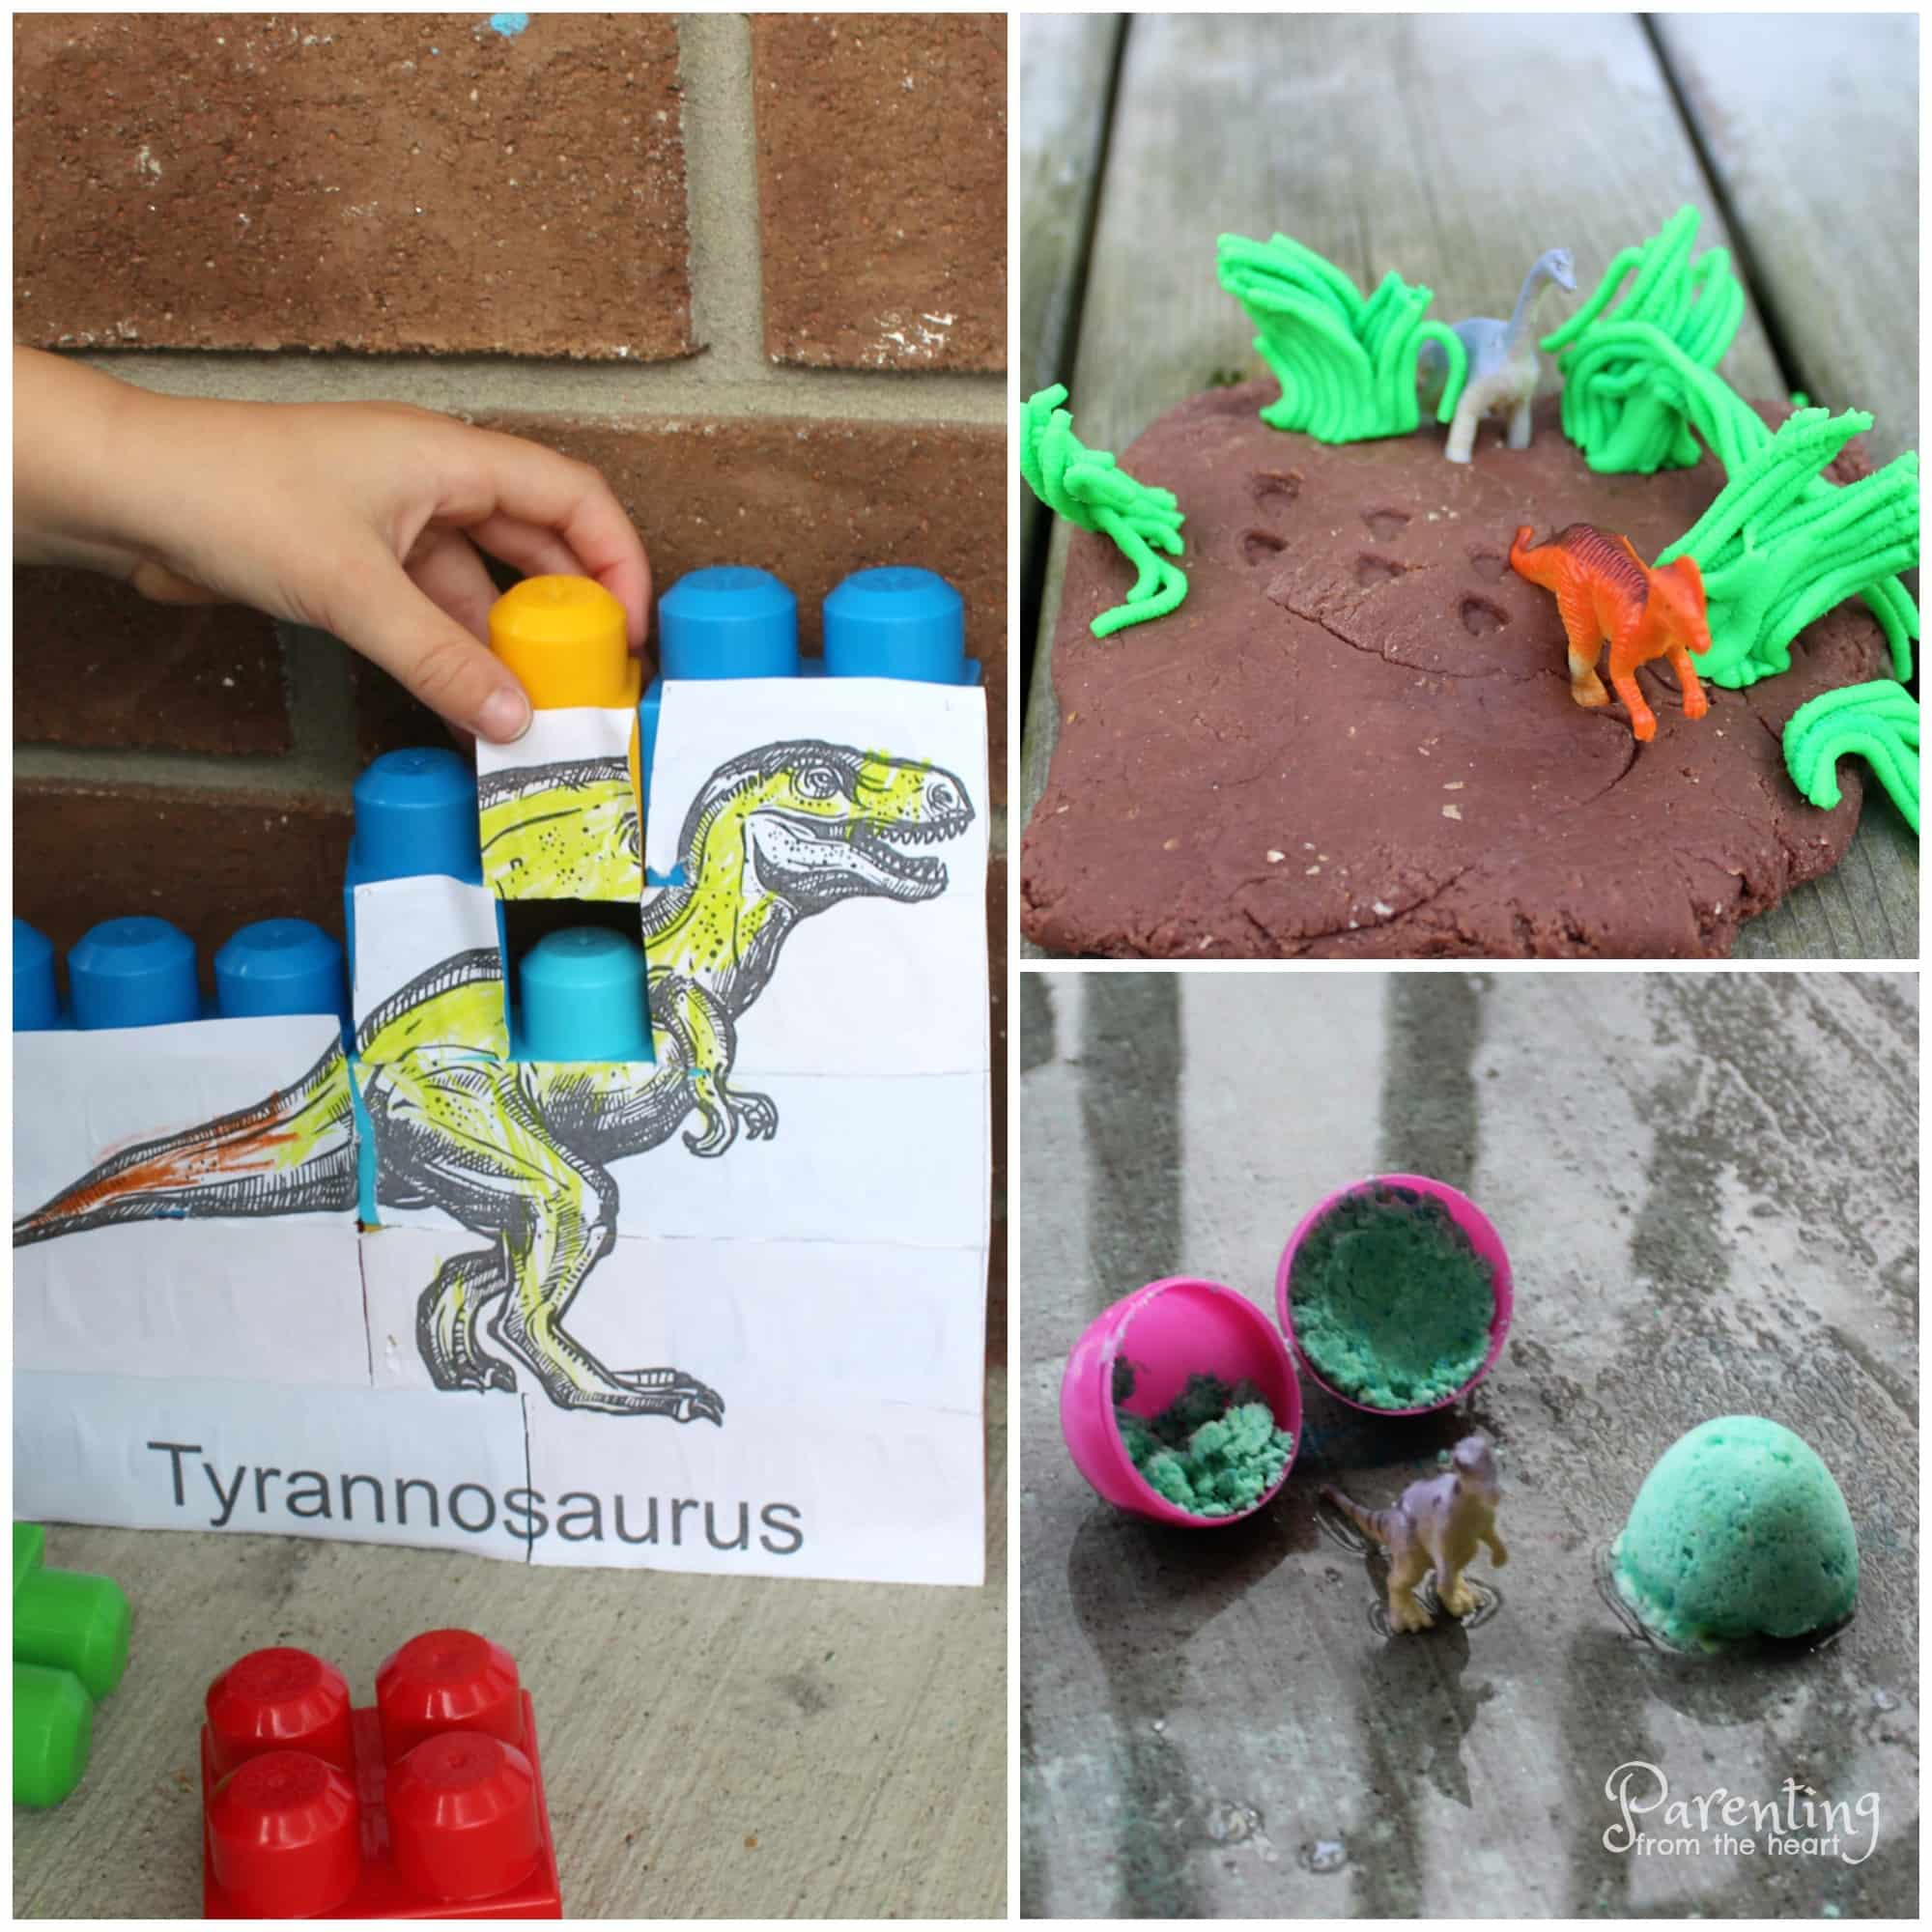 Dinosaurs For Kids Play Based Learning Activities With